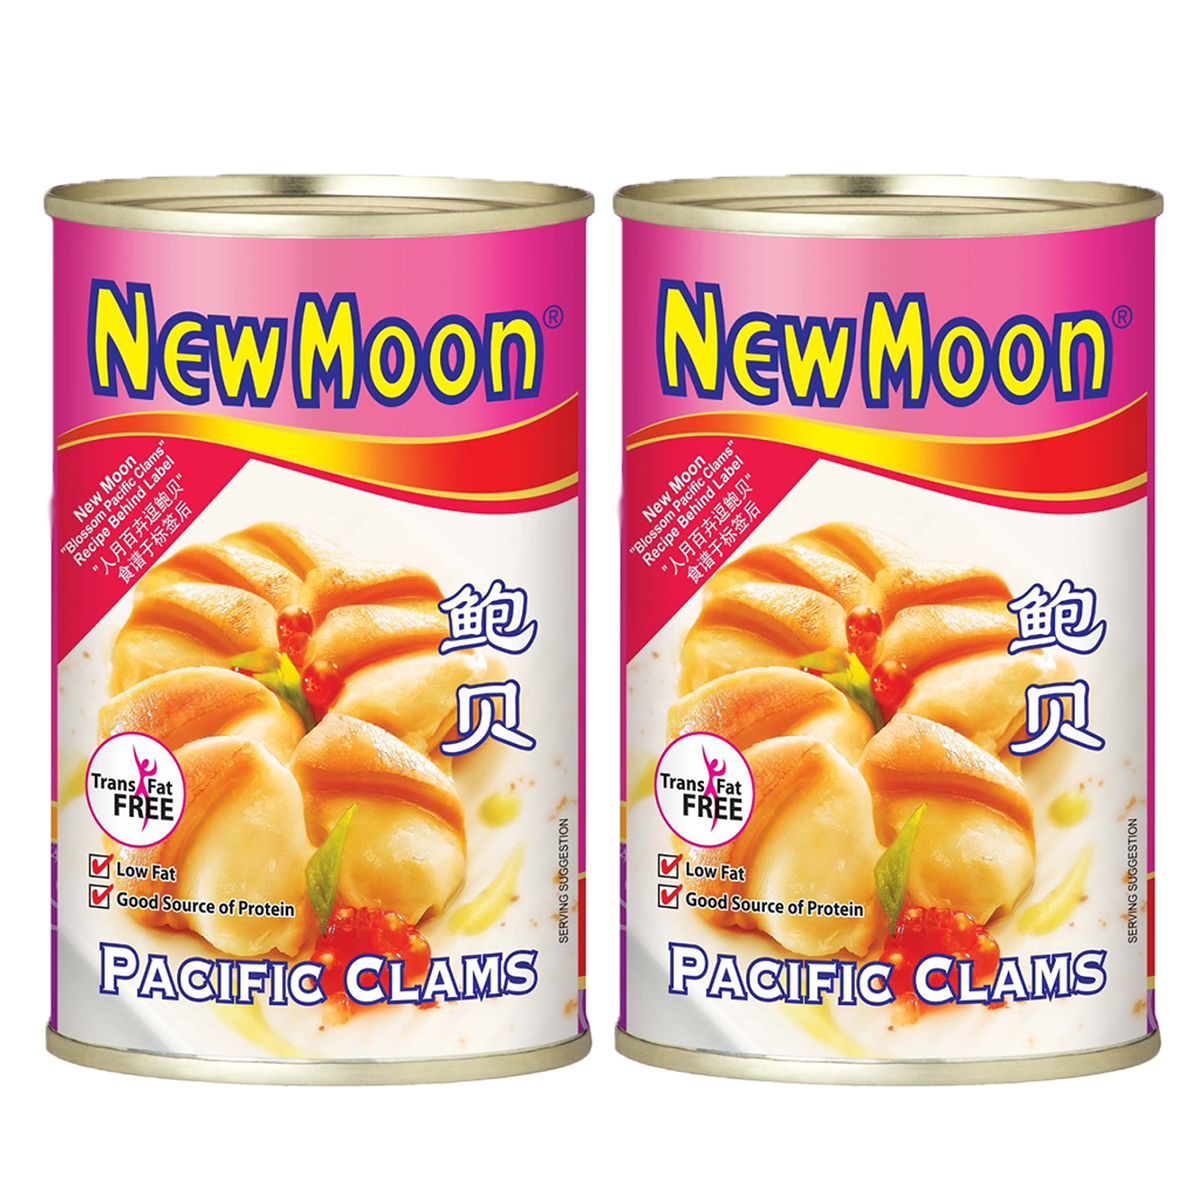 New Moon Pacific Clams 425g x 2